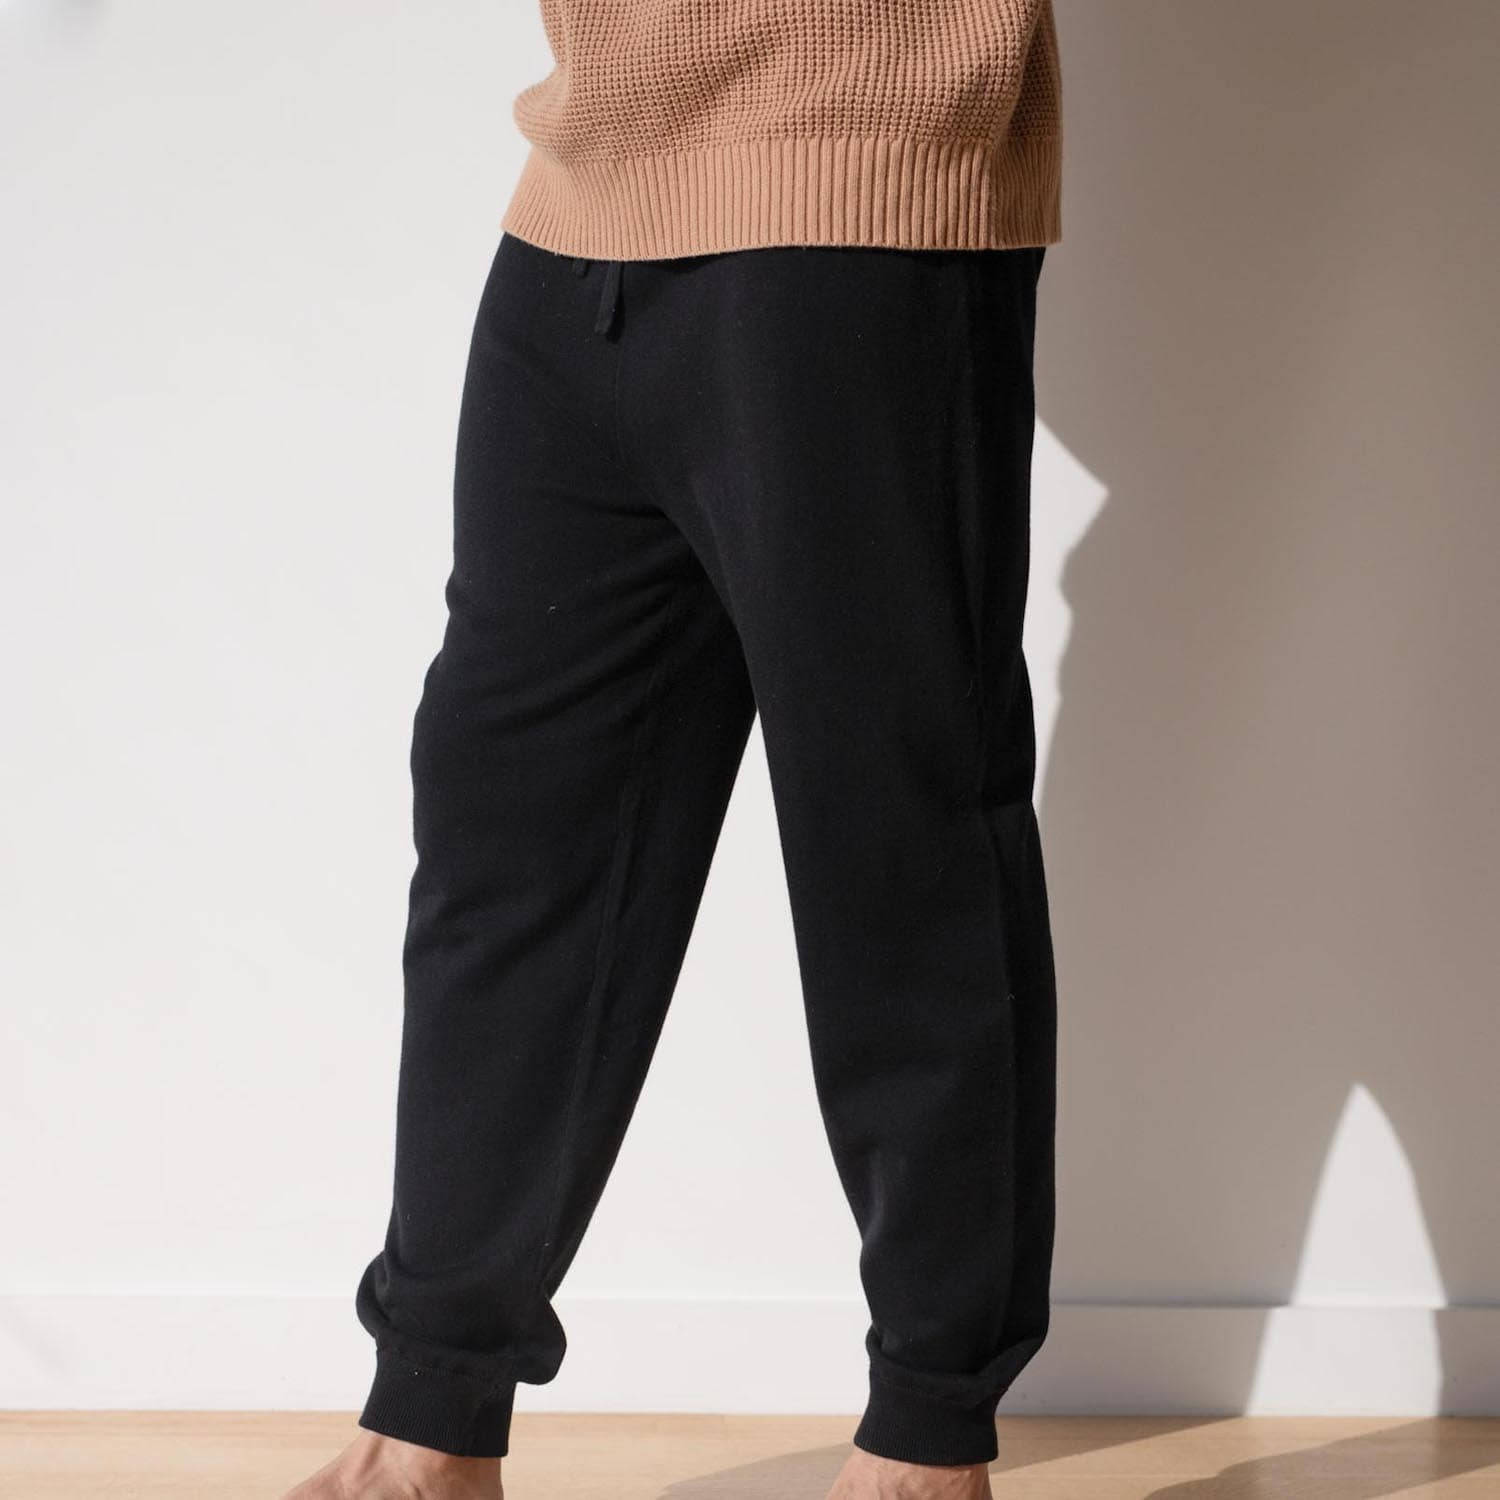 Lahgo Sleepwear Cotton Silk Jogger - #Black